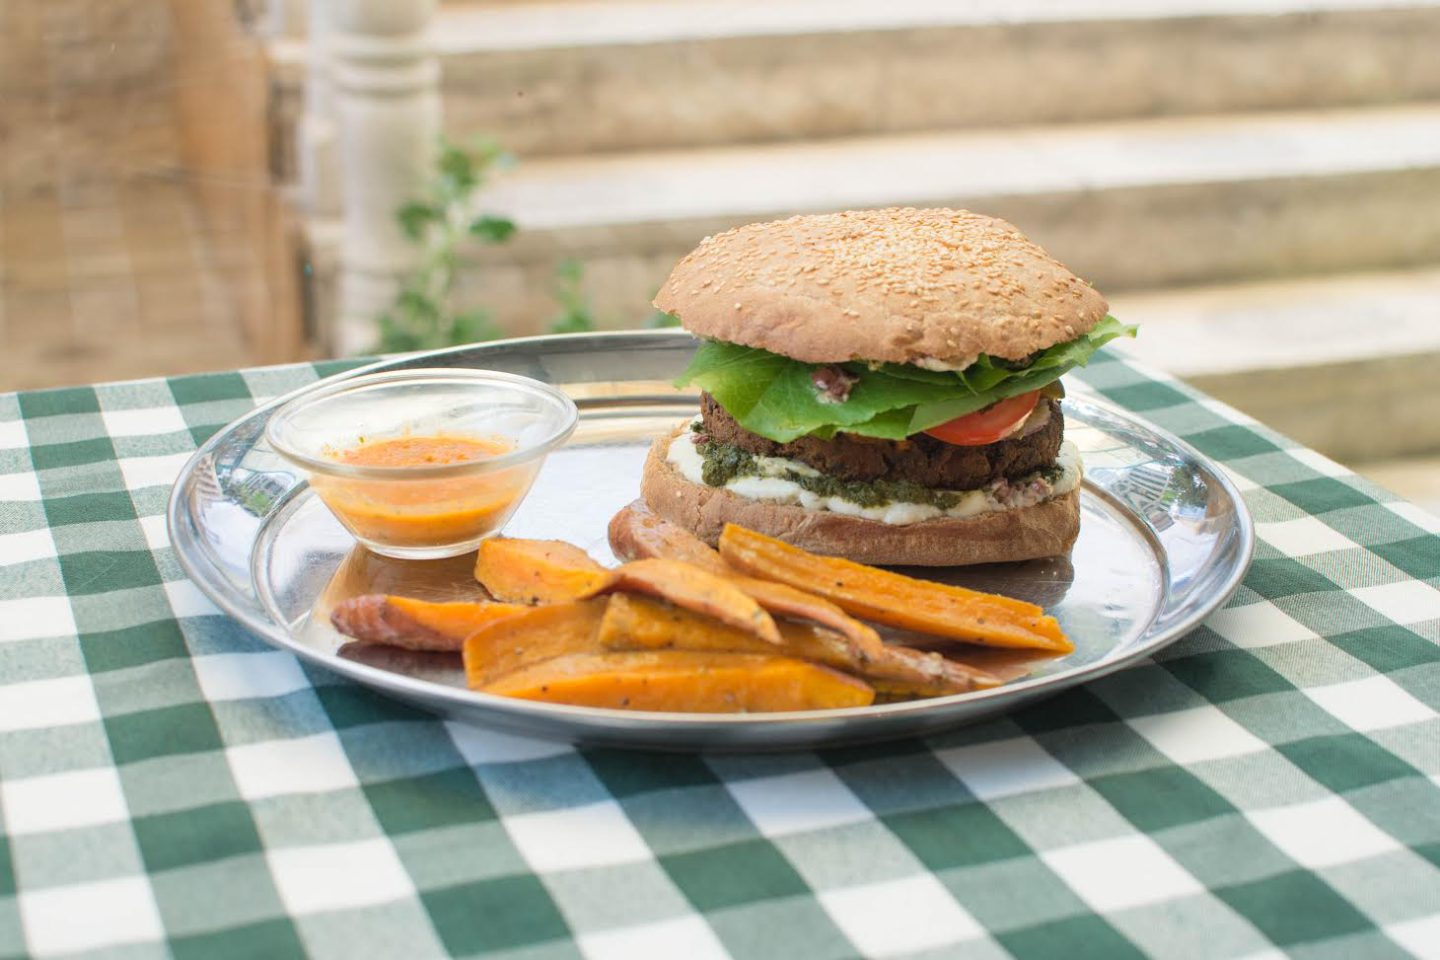 This Jerusalem restaurant combines vegan, kosher and cozy in one homely place |The Switchers